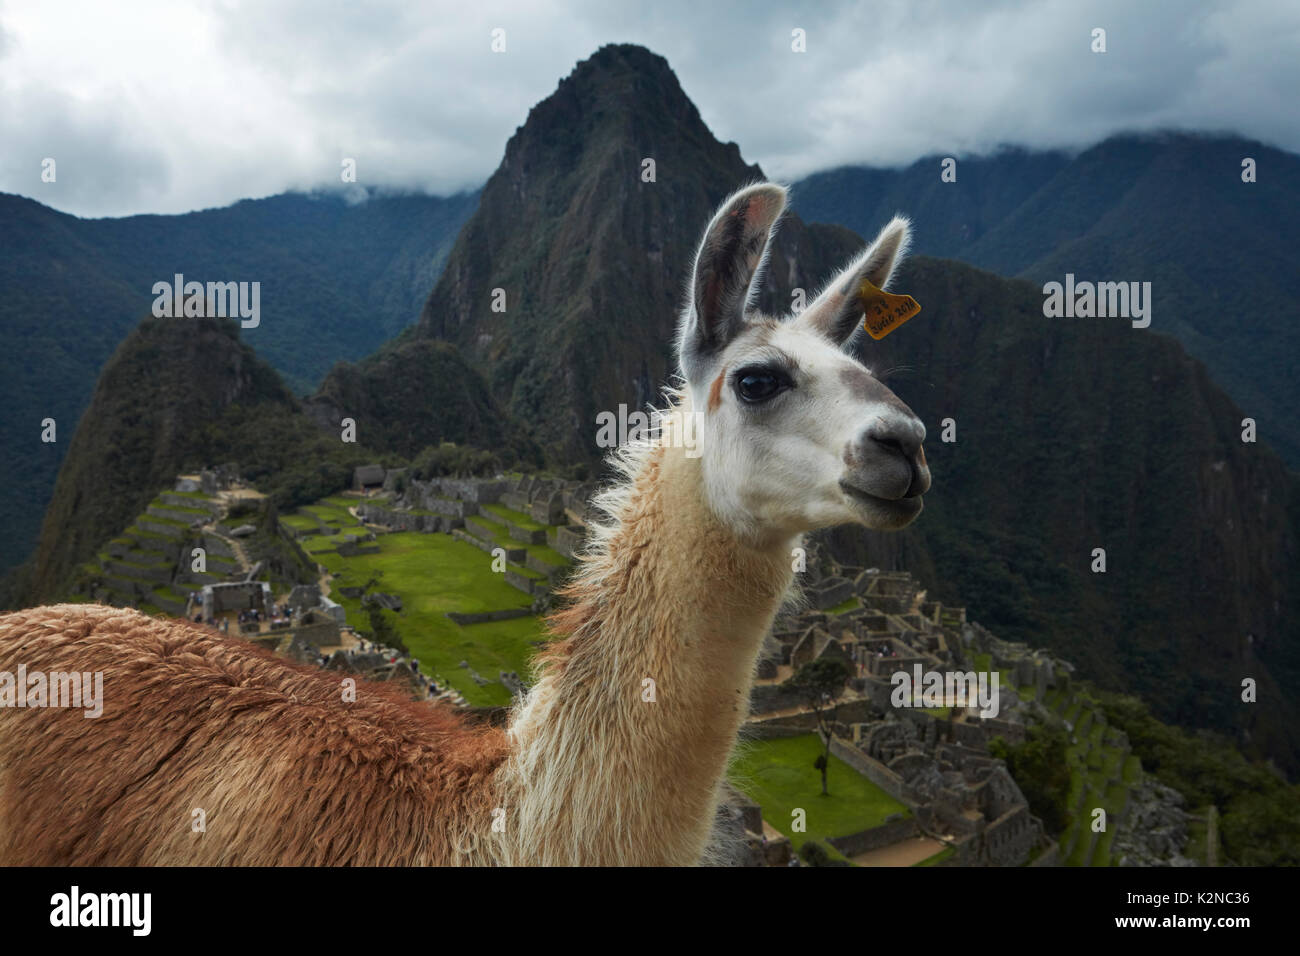 Llama at Machu Picchu Inca ruins (World Heritage Site), Sacred Valley, Peru, South America - Stock Image